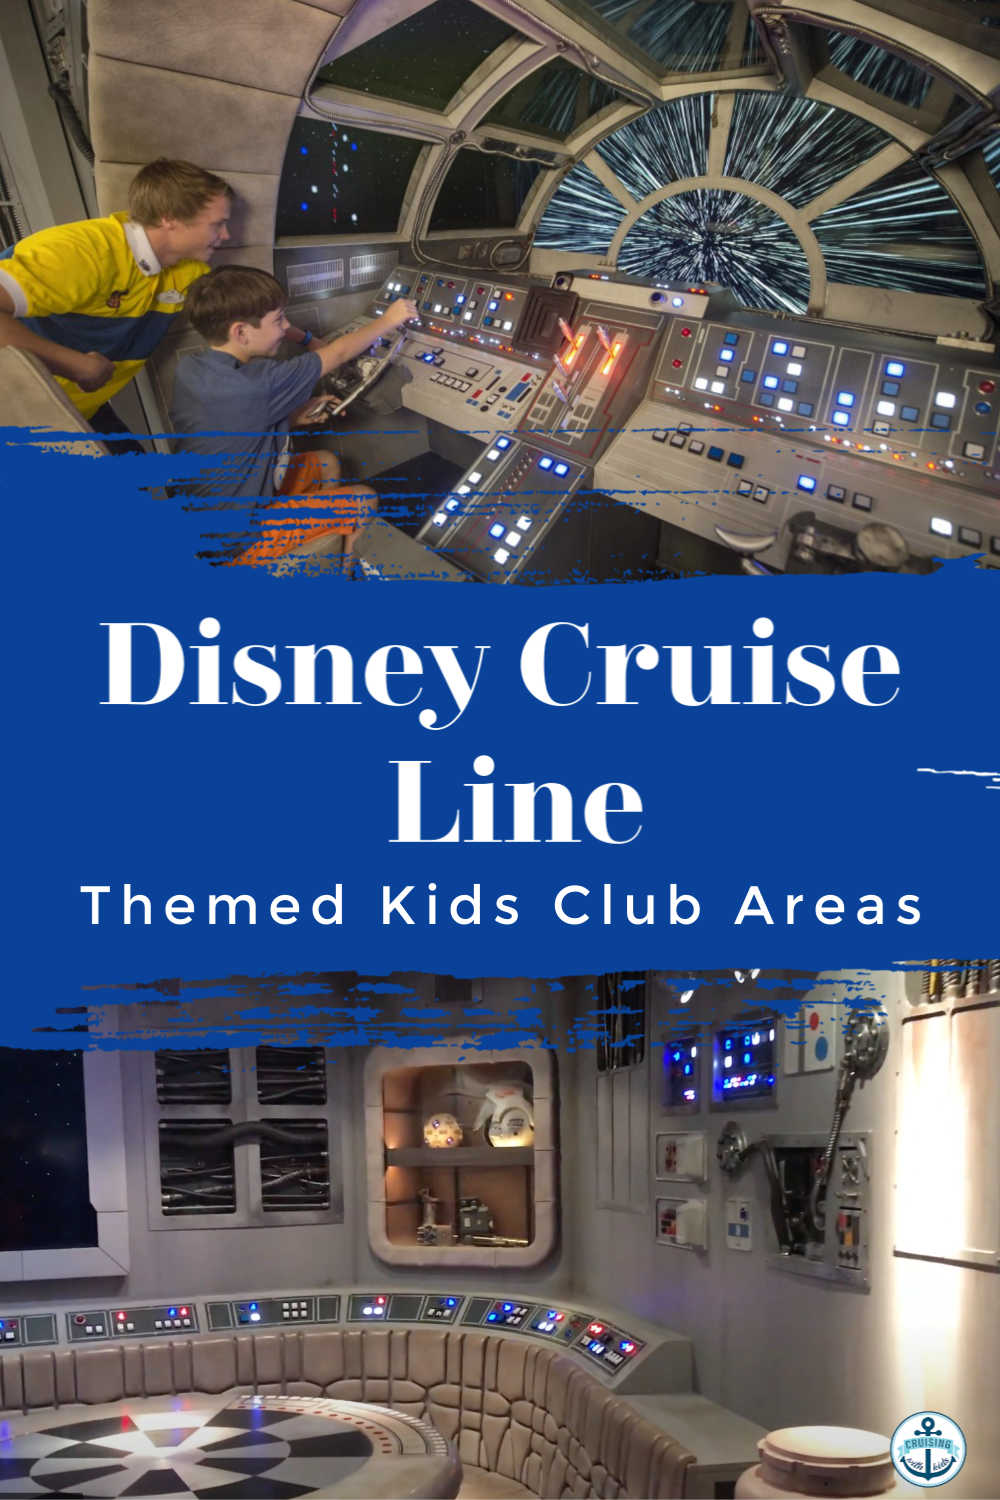 Disney Cruise Line Themed Kids Club Areas you can expect to find on each Disney Cruise Ship